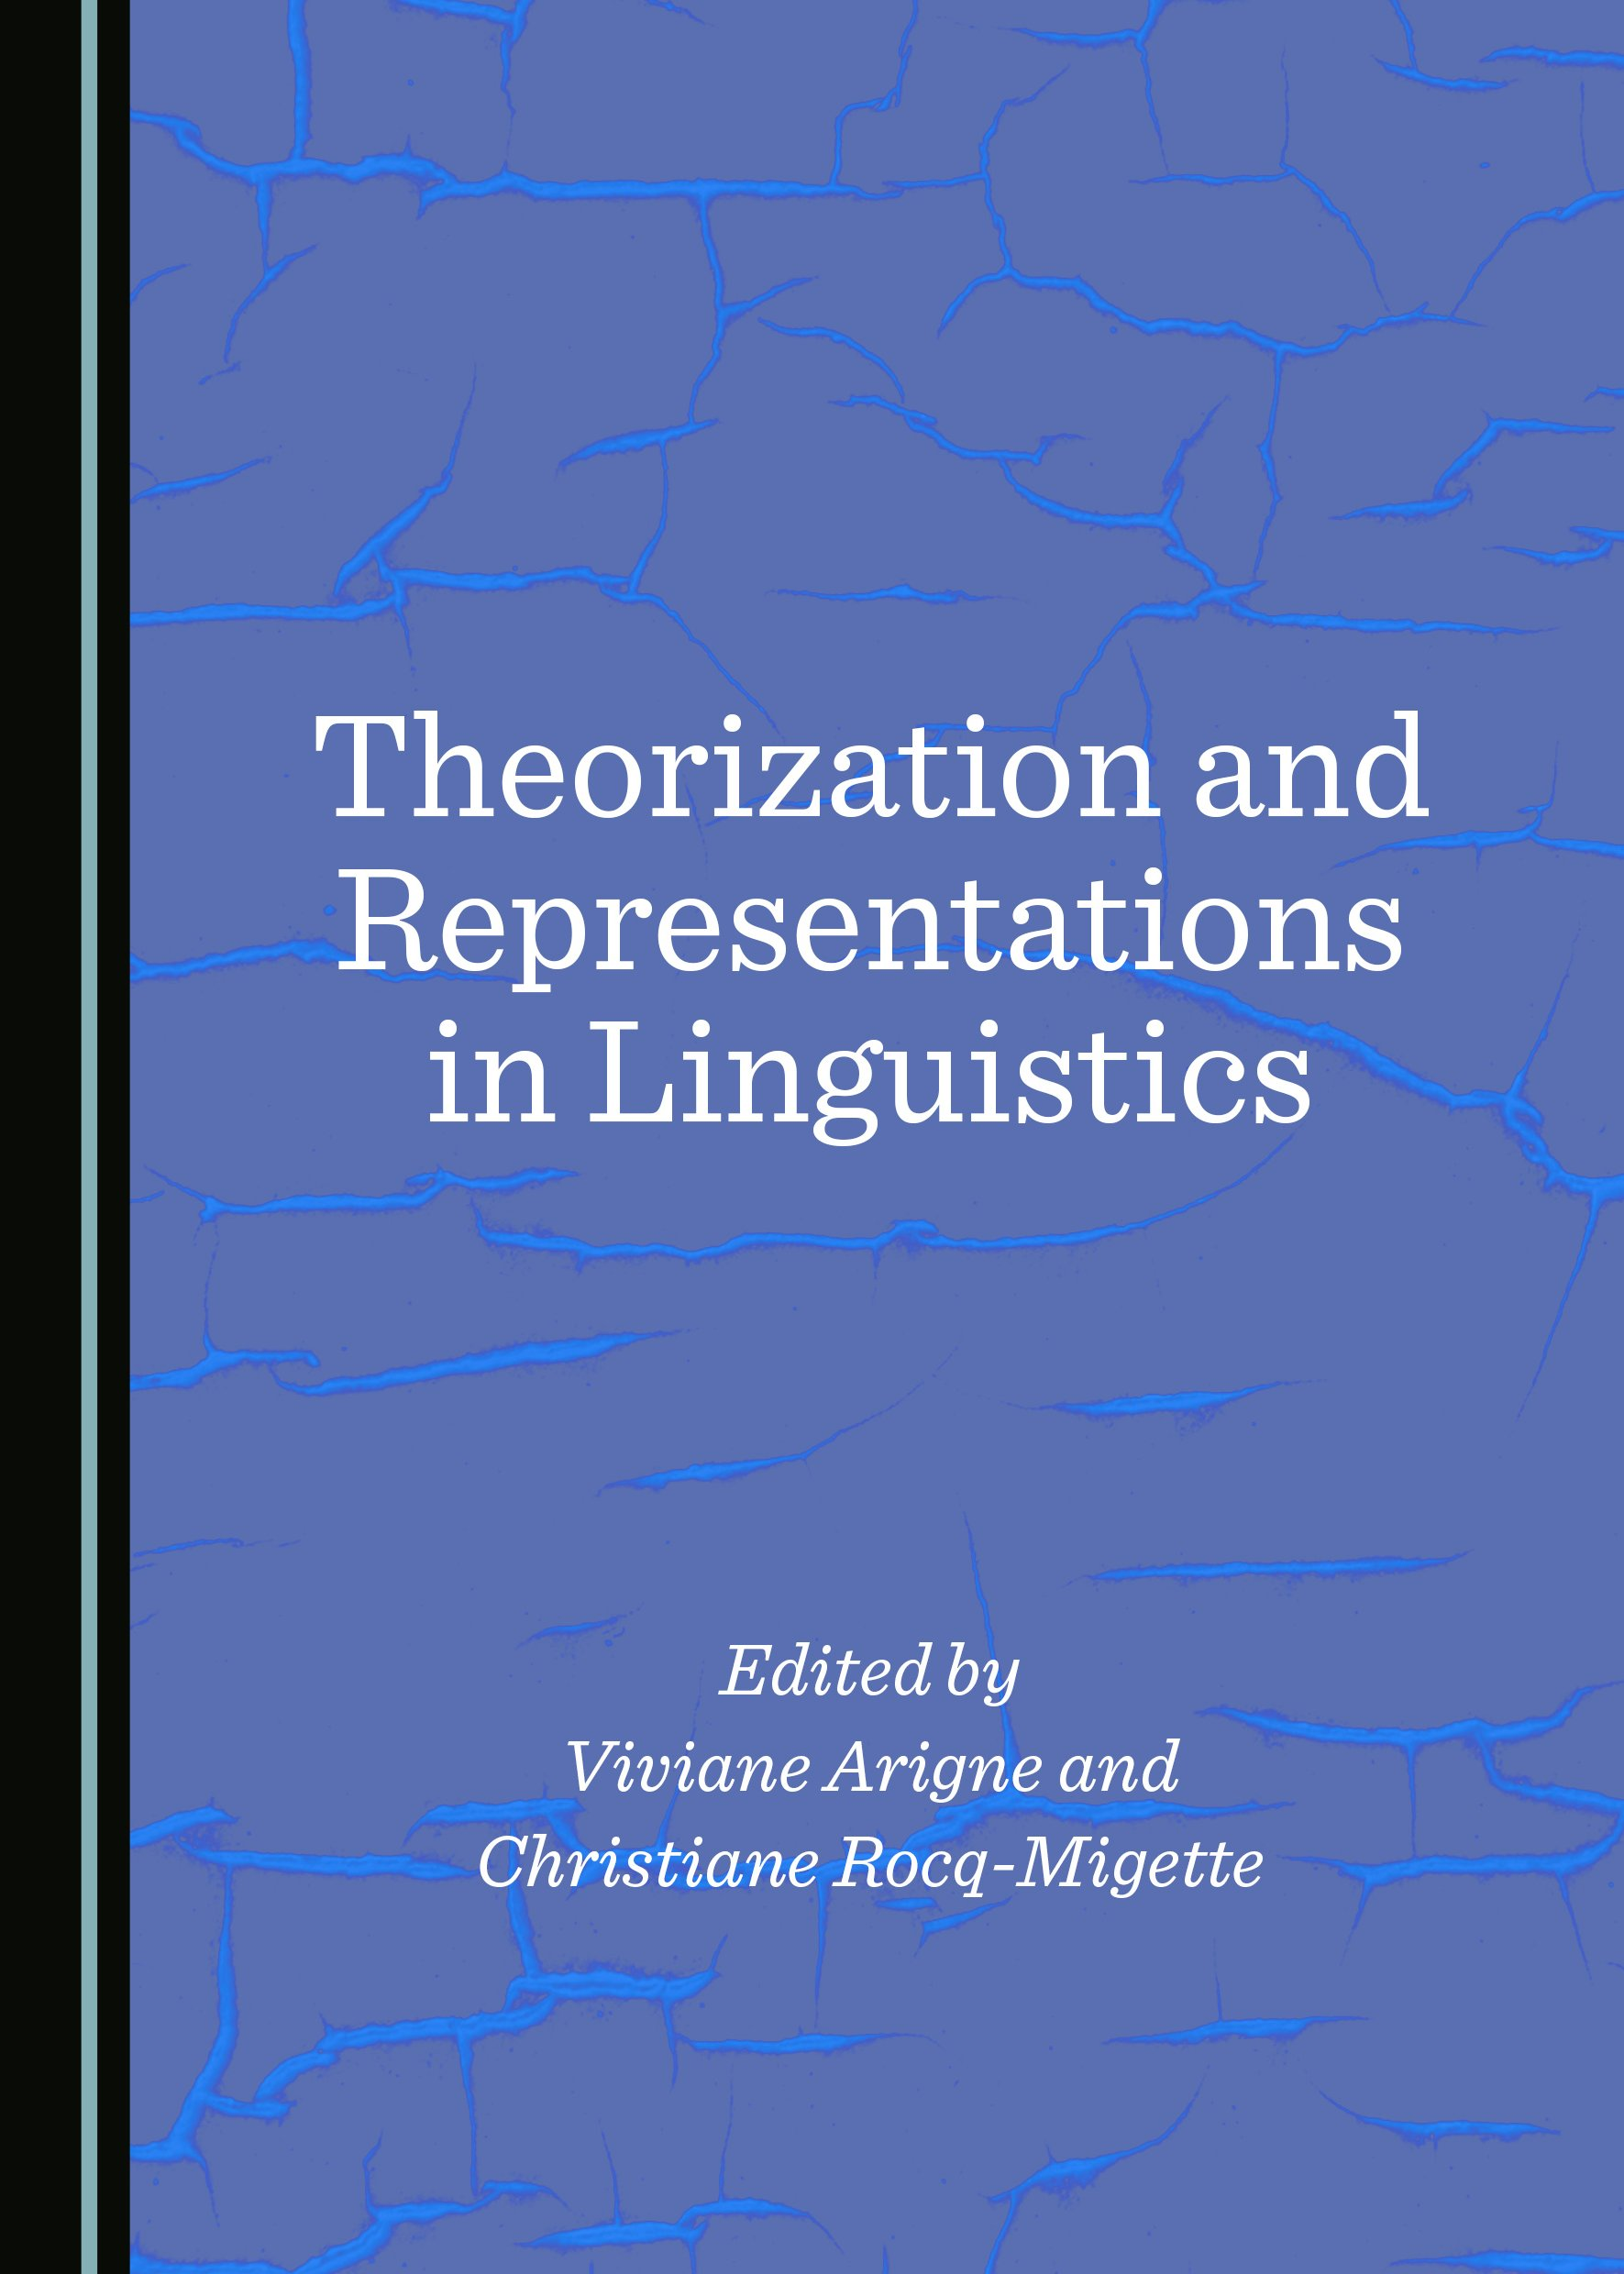 Theorization and Representations in Linguistics